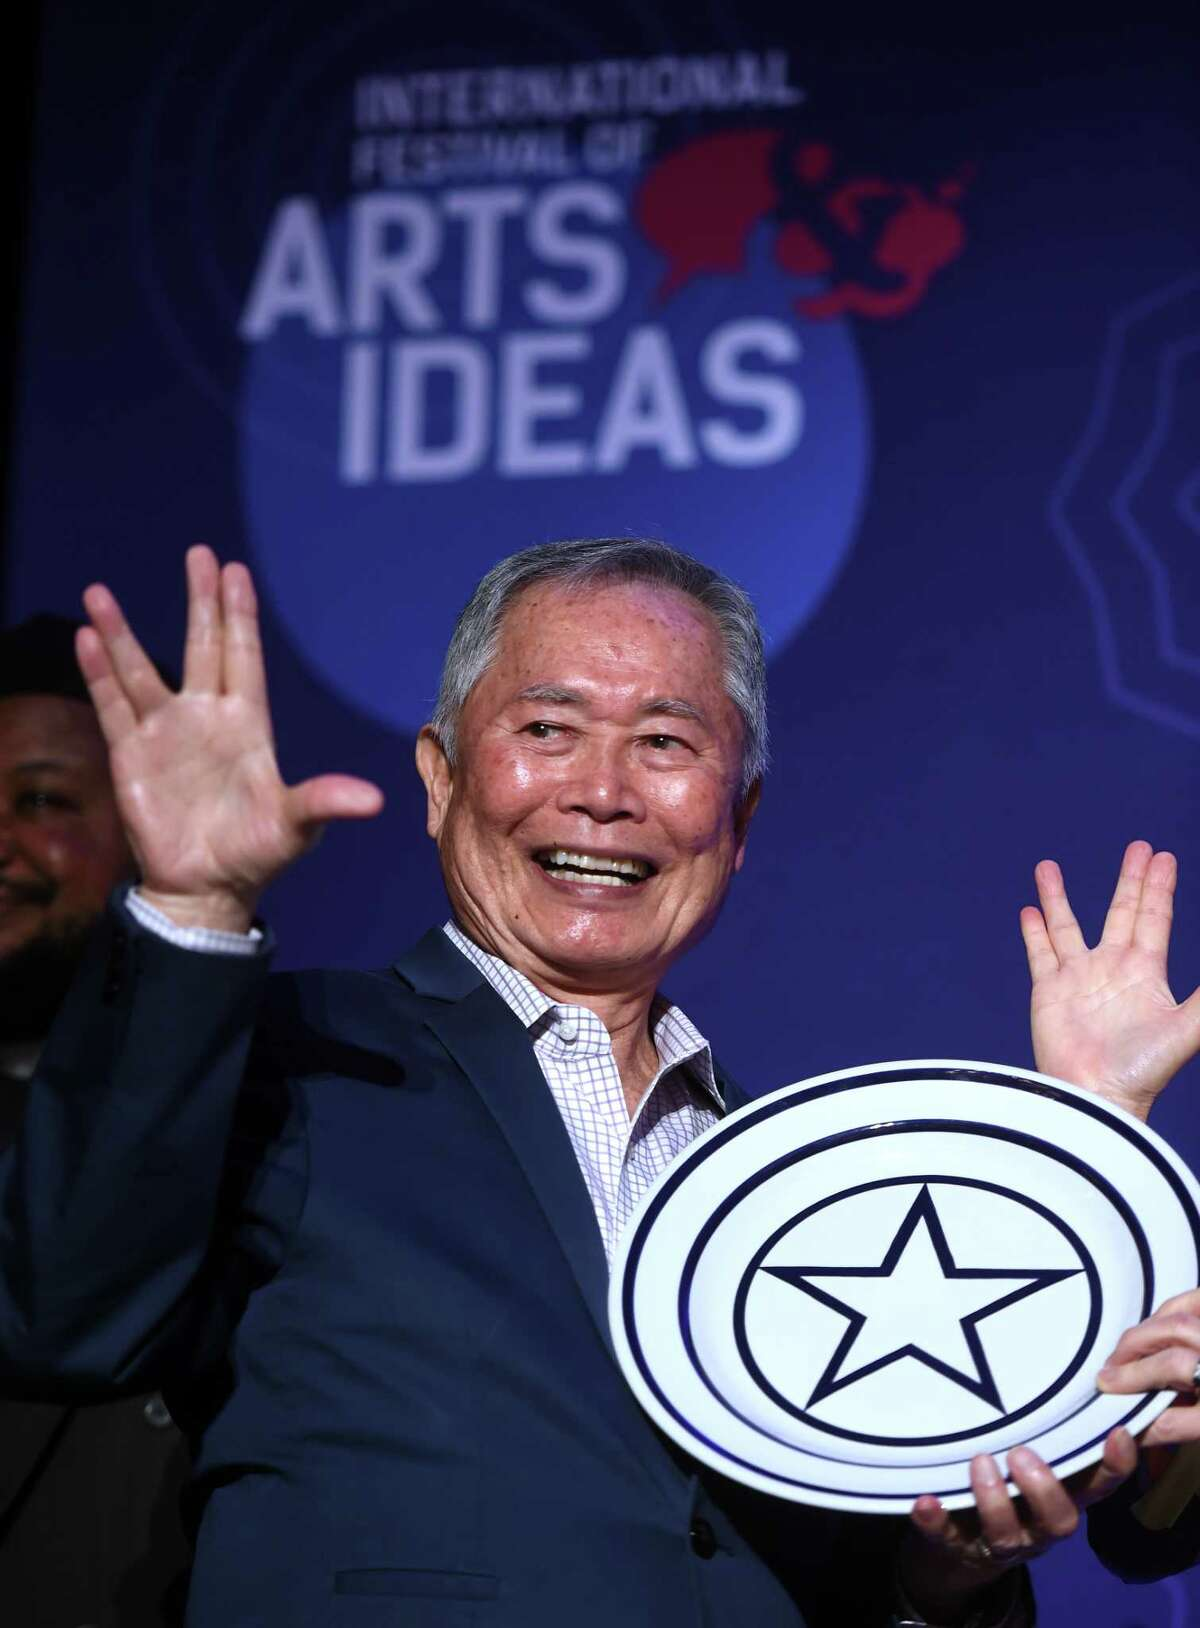 Actor and activist George Takei flashes the Vulcan salute after receiving the Visionary Leadership Award by the International Festival of Arts & Ideas at the Omni New Haven Hotel at Yale on February 18, 2020. The award honors a person whose work impacts the world.